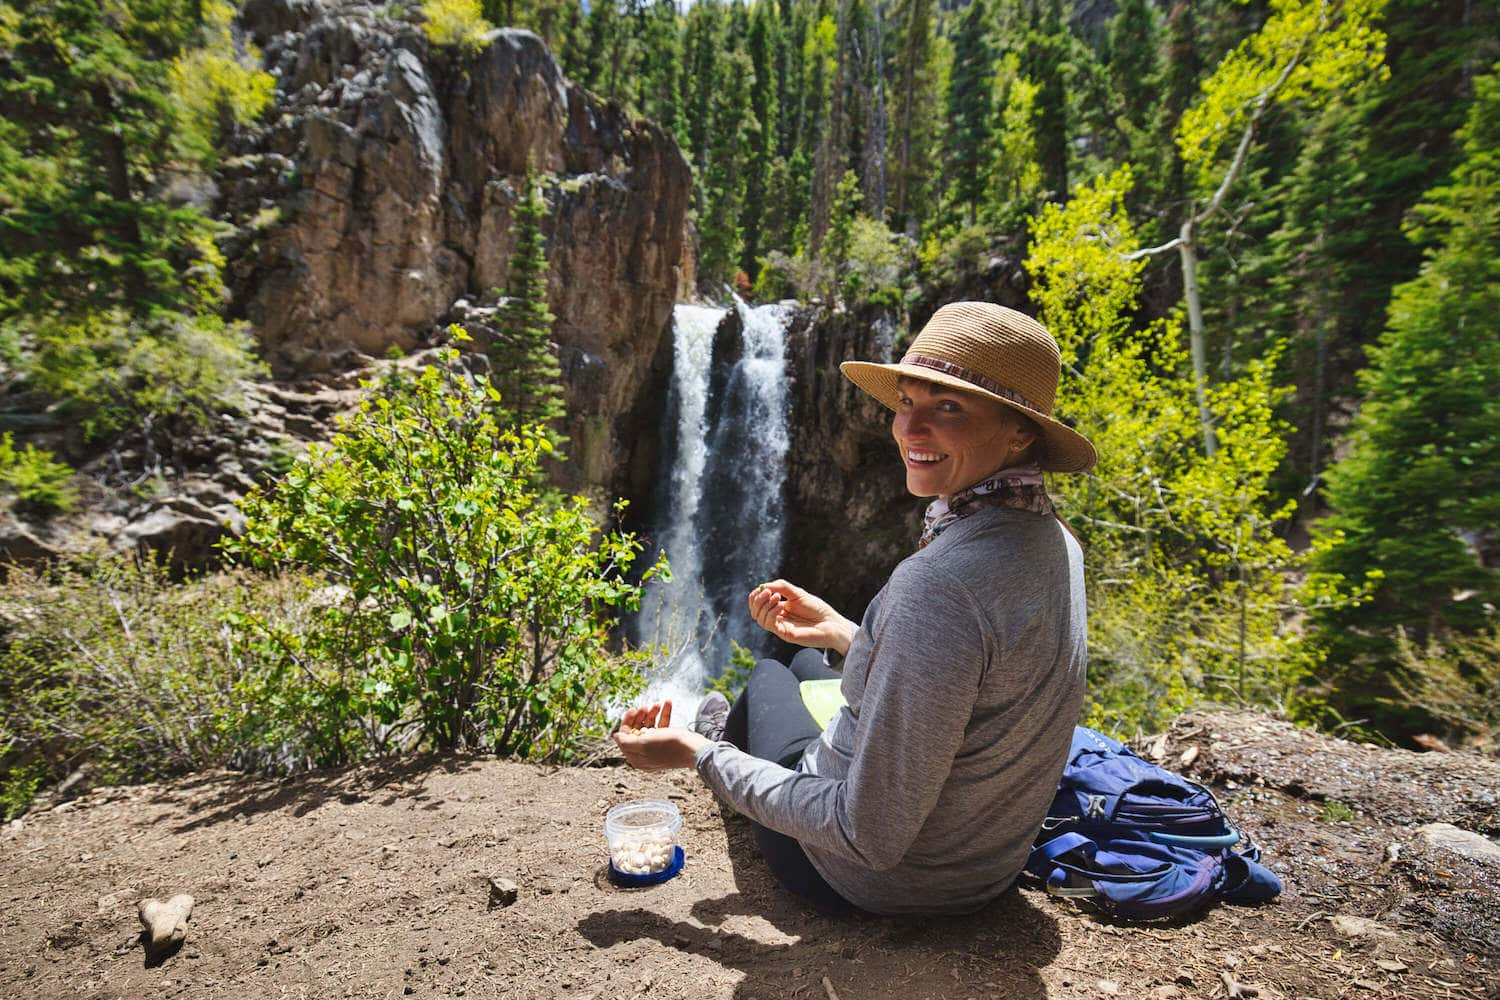 Worried about getting enough protein as a vegan hiker? Read on! Get tips for plant-based hiking and learn how to stay energized on the trail.